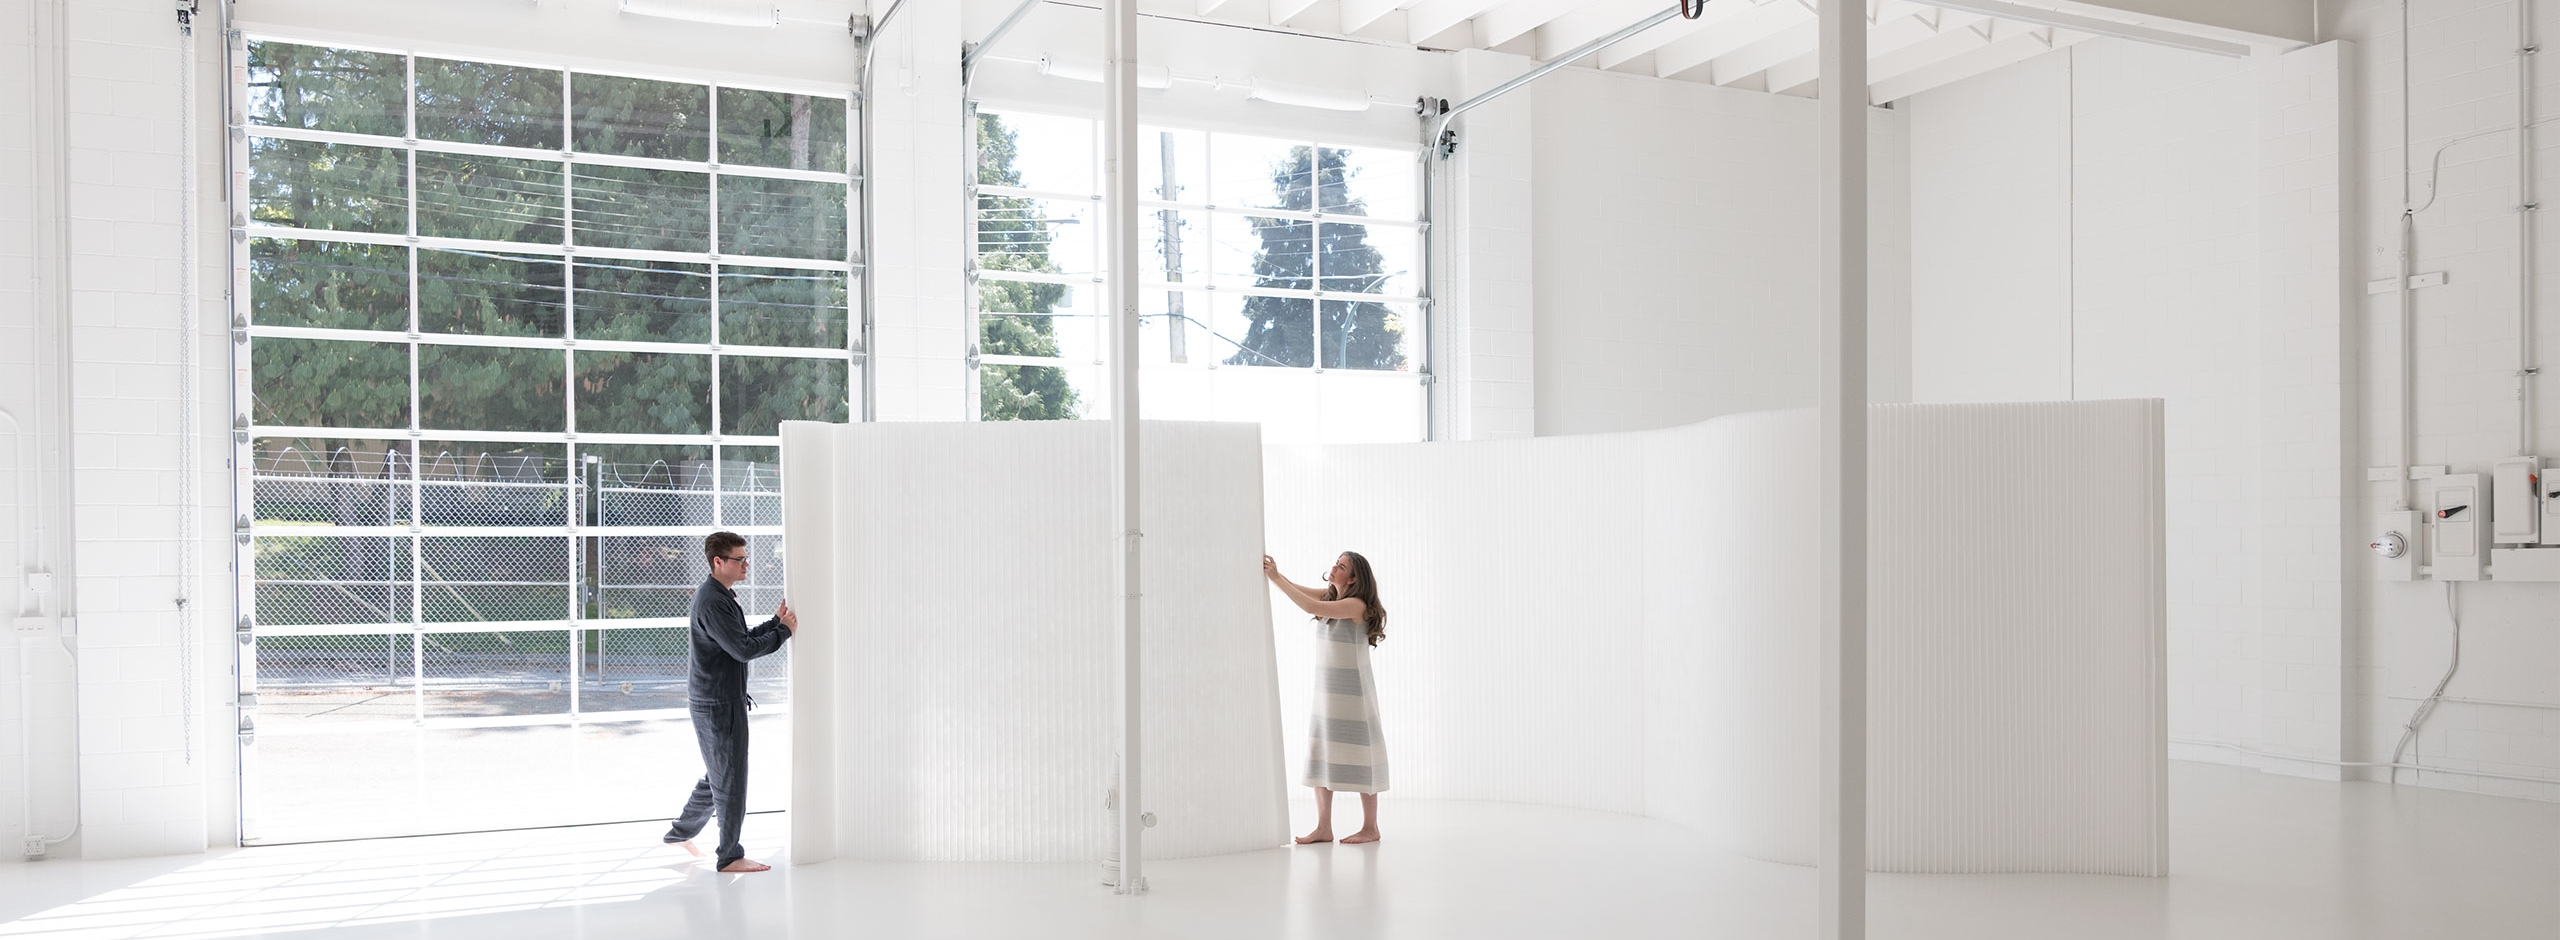 textile softwall is a folding partition that is expandable or can compress to flat pack for easy storage and shipping. Designed by molo this freestanding room divider comes in a variety of heights and has a modular magnetic connection system.